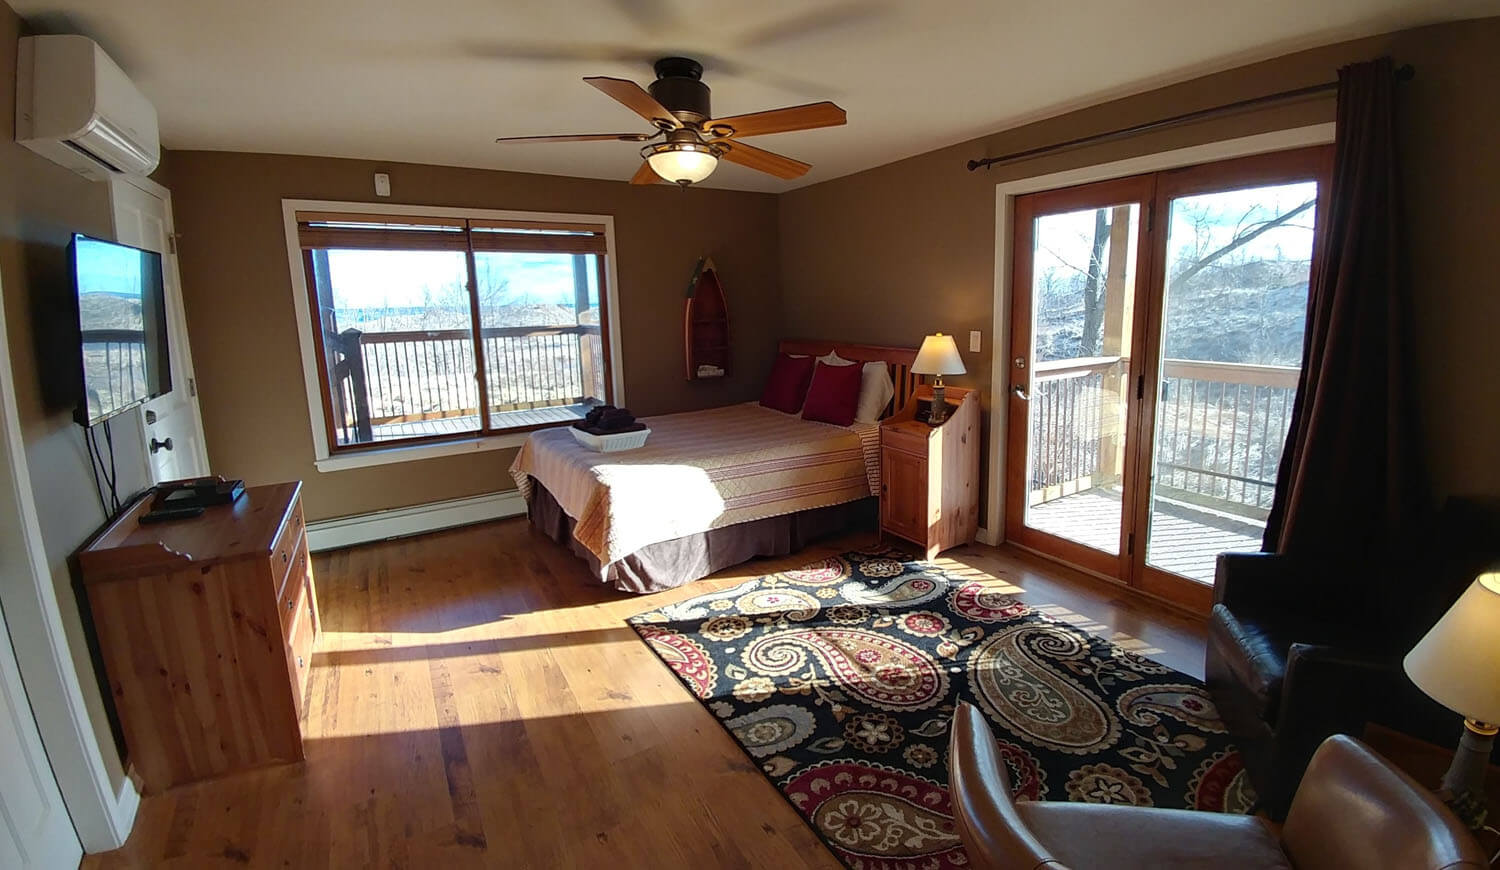 A large bedroom with wooden floors. A double bed sits in the corner across from an entertainment center with a large, flatscreen TV hanging on the wall. A sitting area with two leather armchairs and a side table sit on top of a decorative rug. Patio doors open onto the deck and the windows reveal views of the Indiana Dunes National Lakeshore.